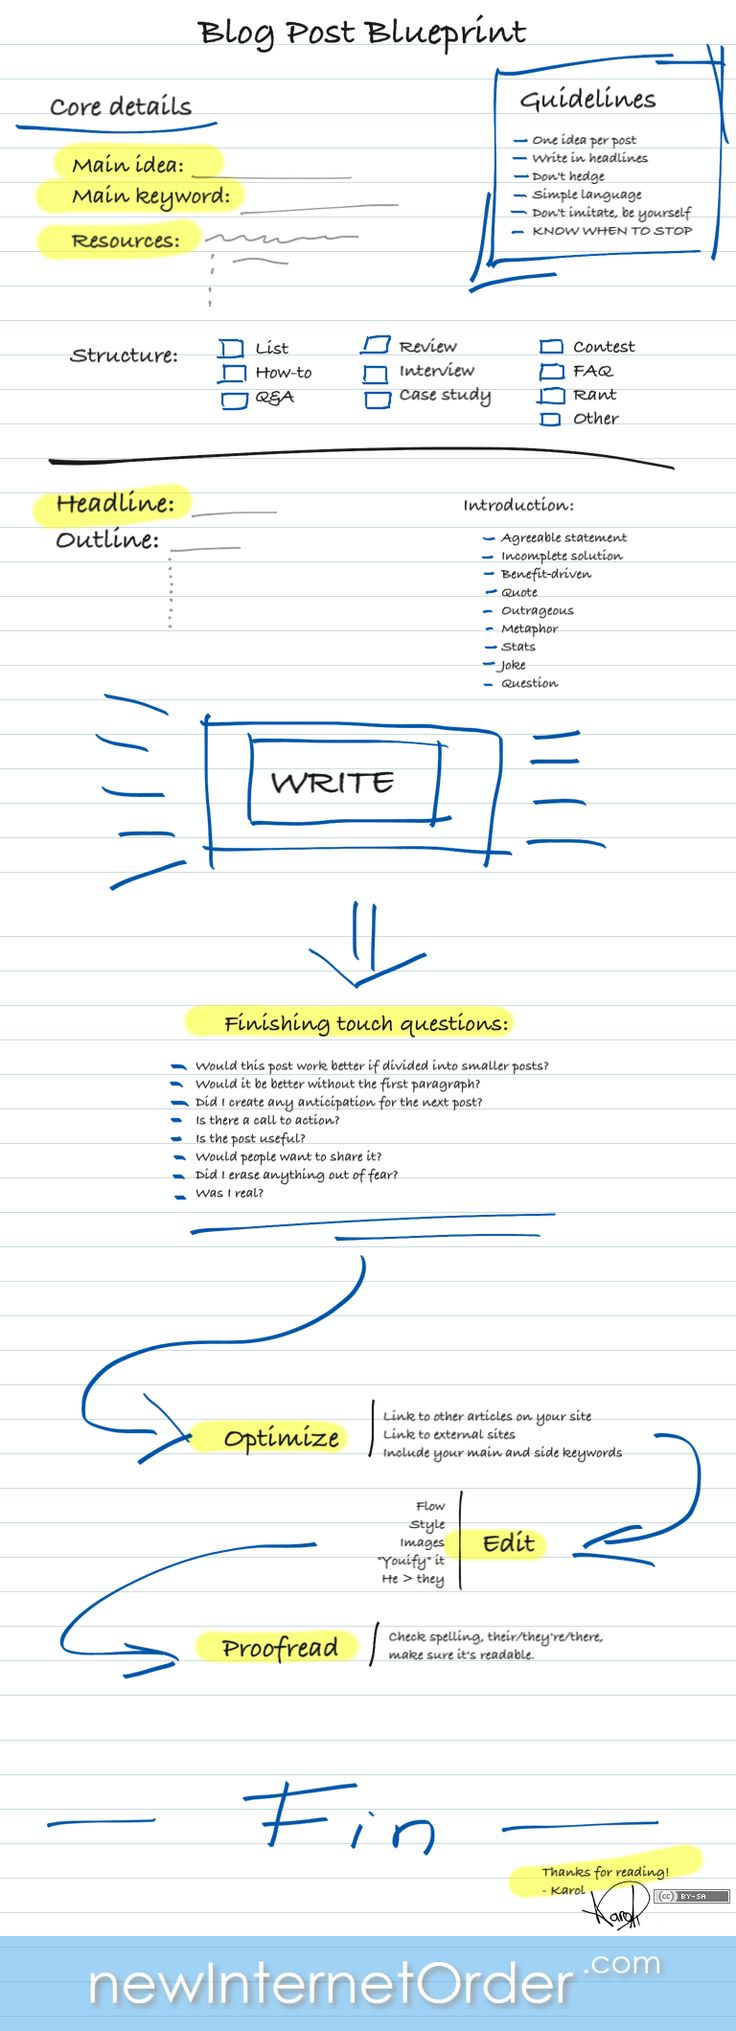 Cool blog post blueprint infographic that makes writing a post a little bit easier.